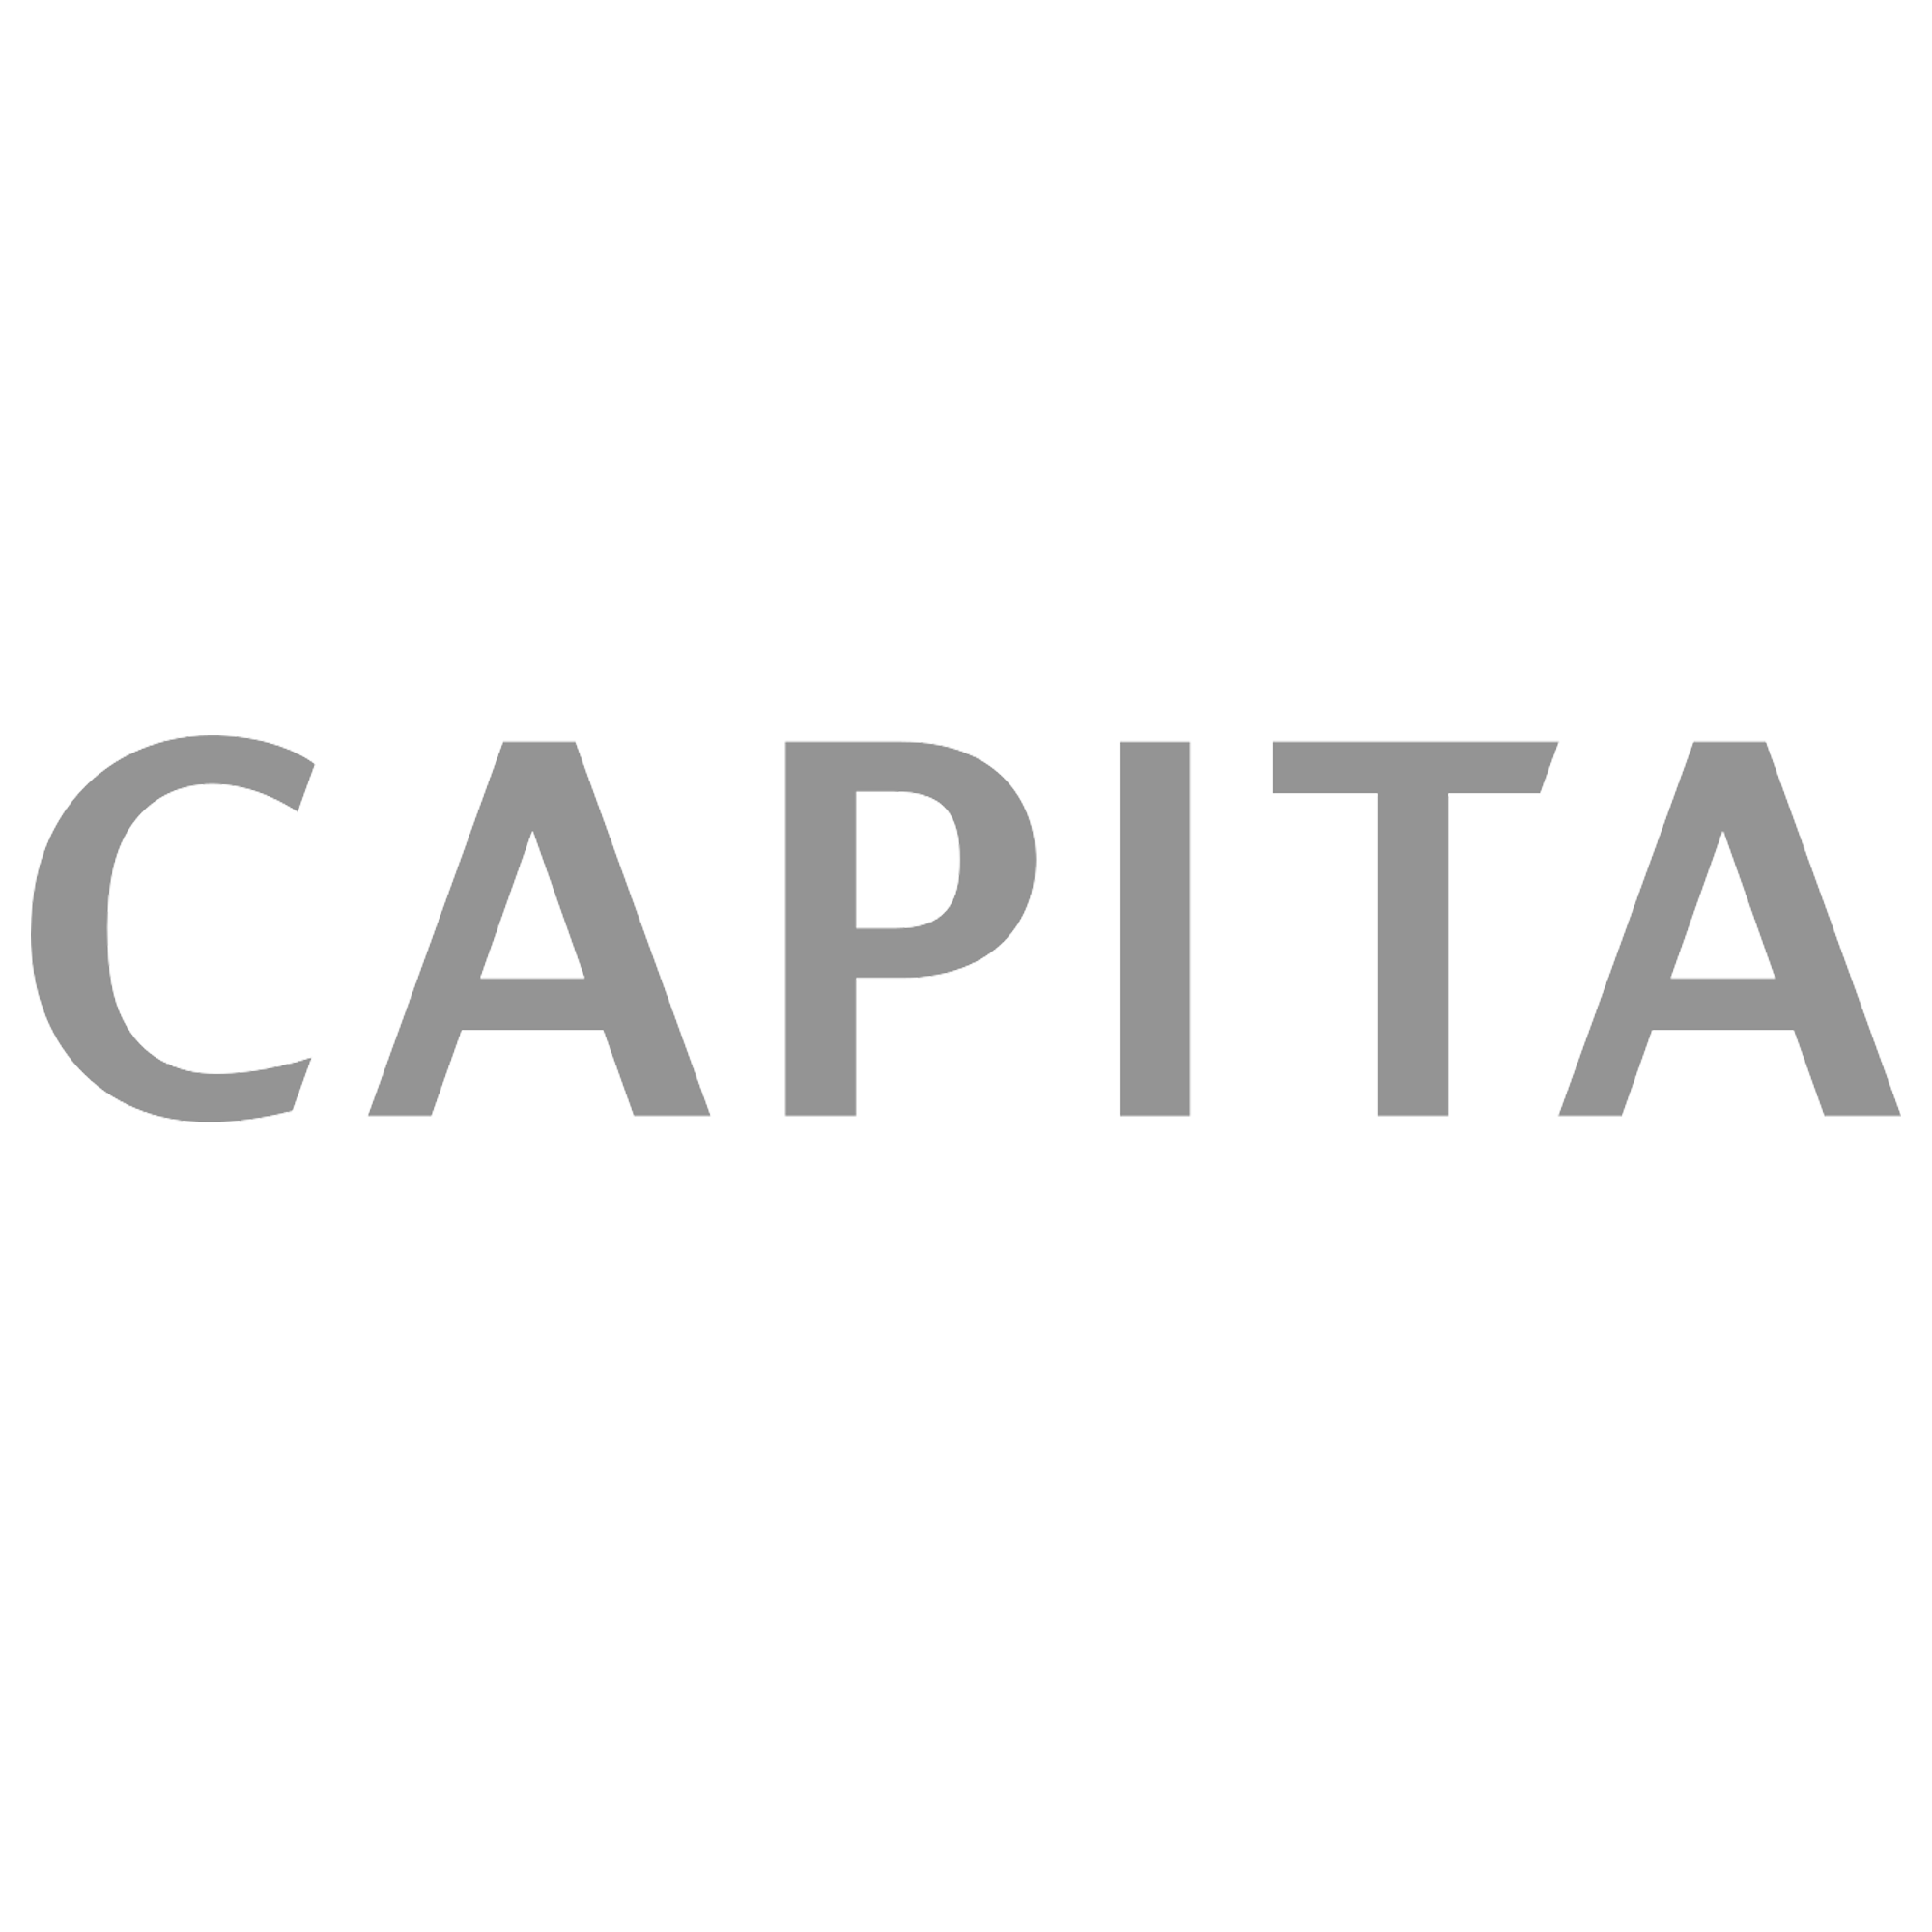 Capita logo_Blaack and white.png